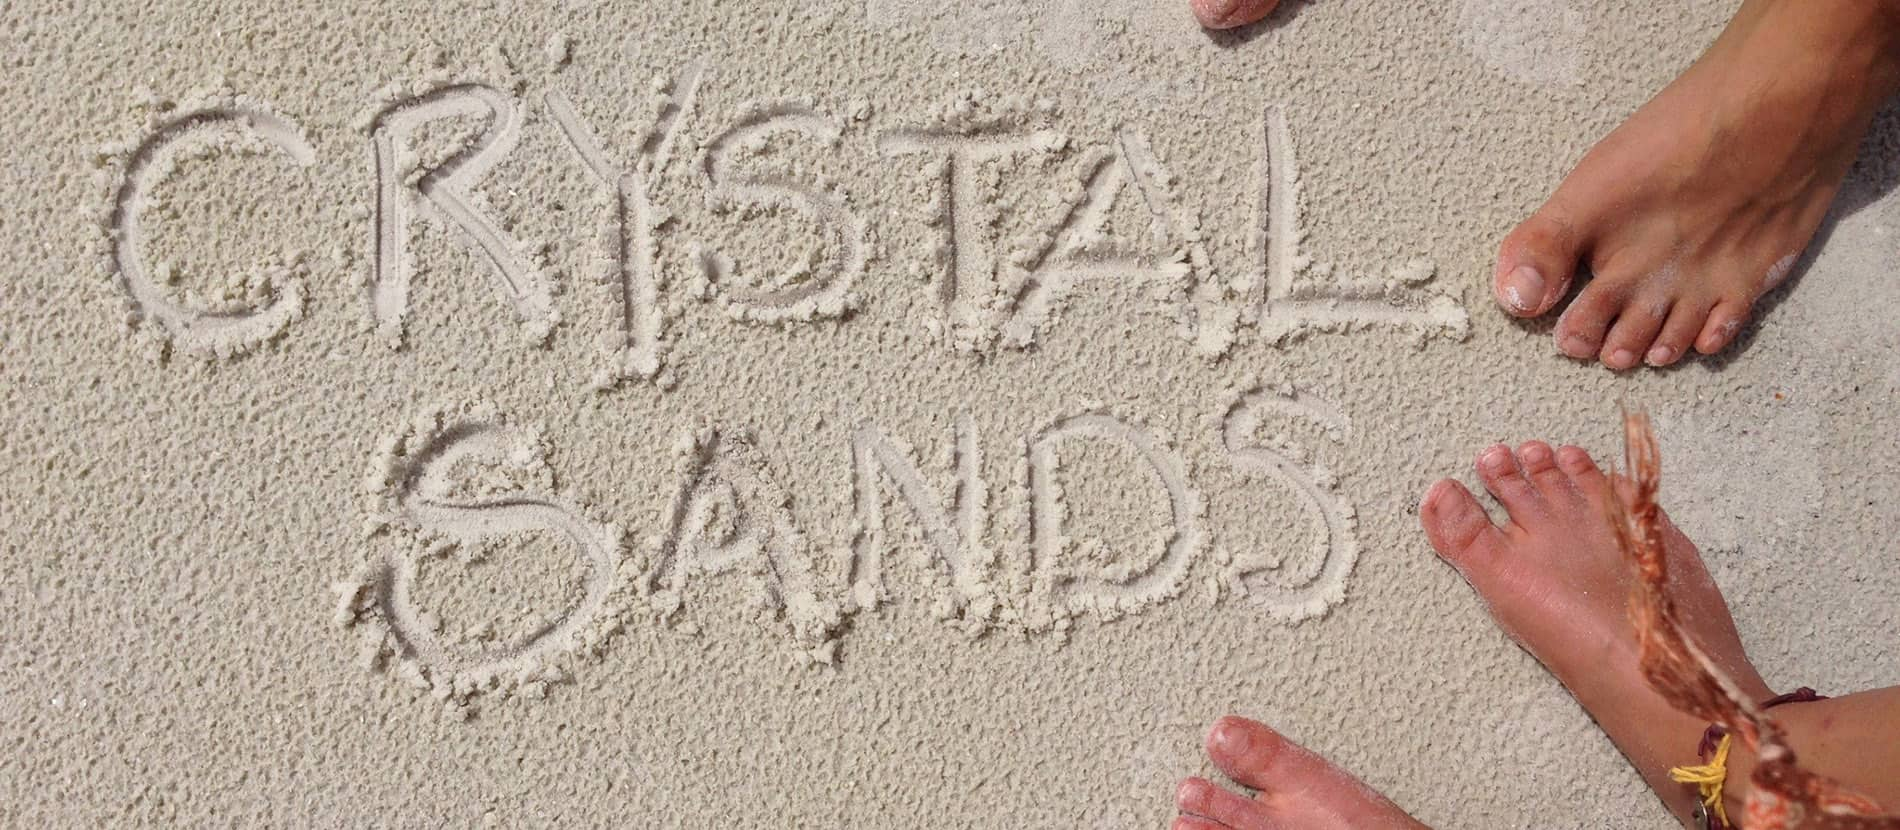 crystal sands written in the sand